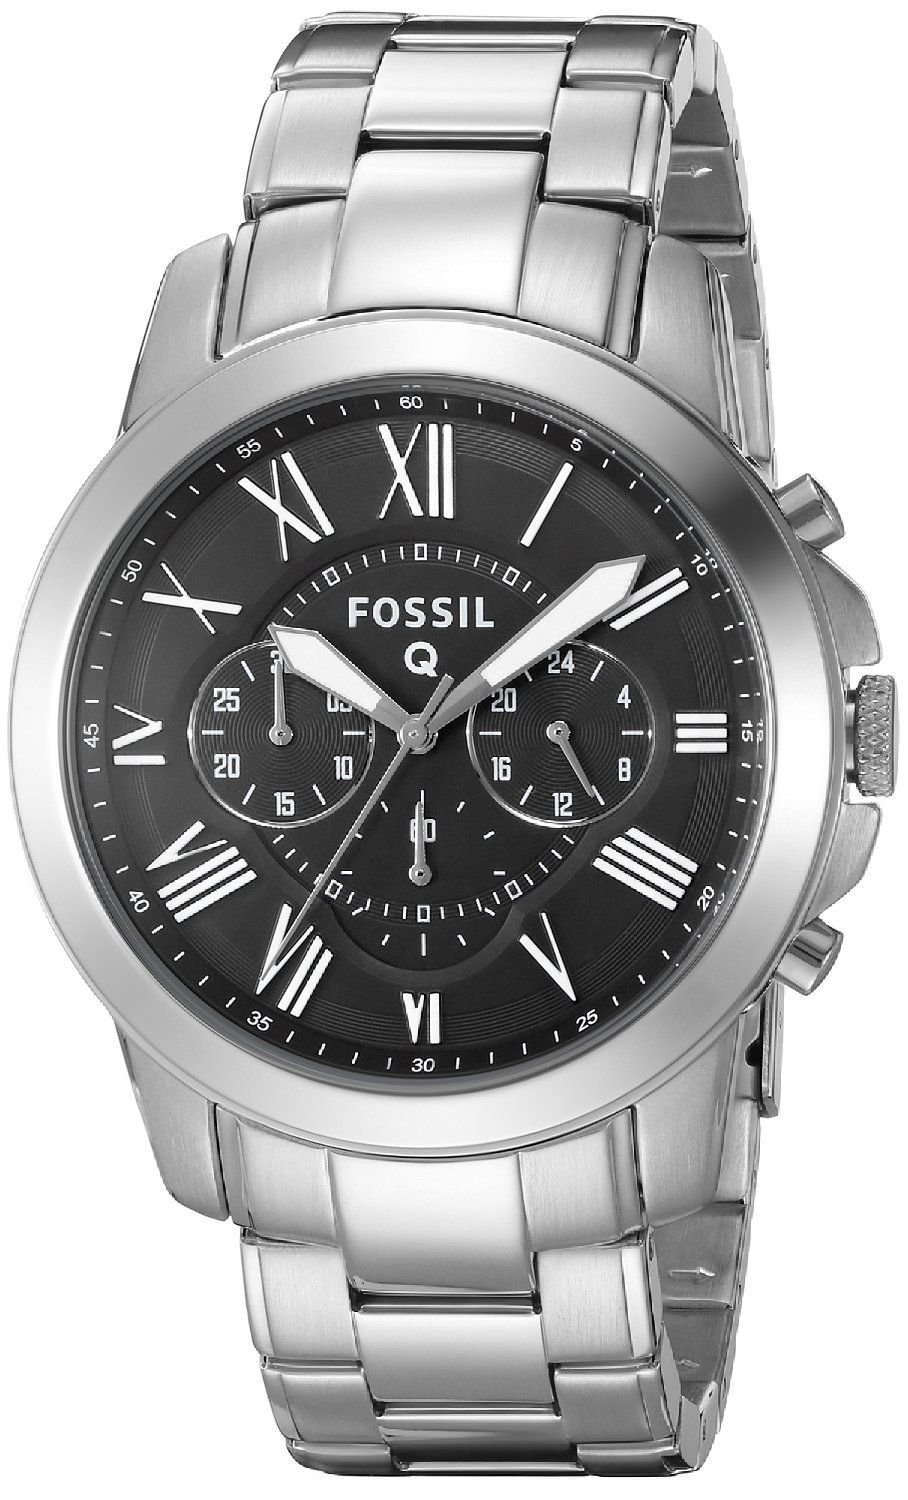 Fossil Q Grant Stainless Steel Hybrid Smartwatch Review